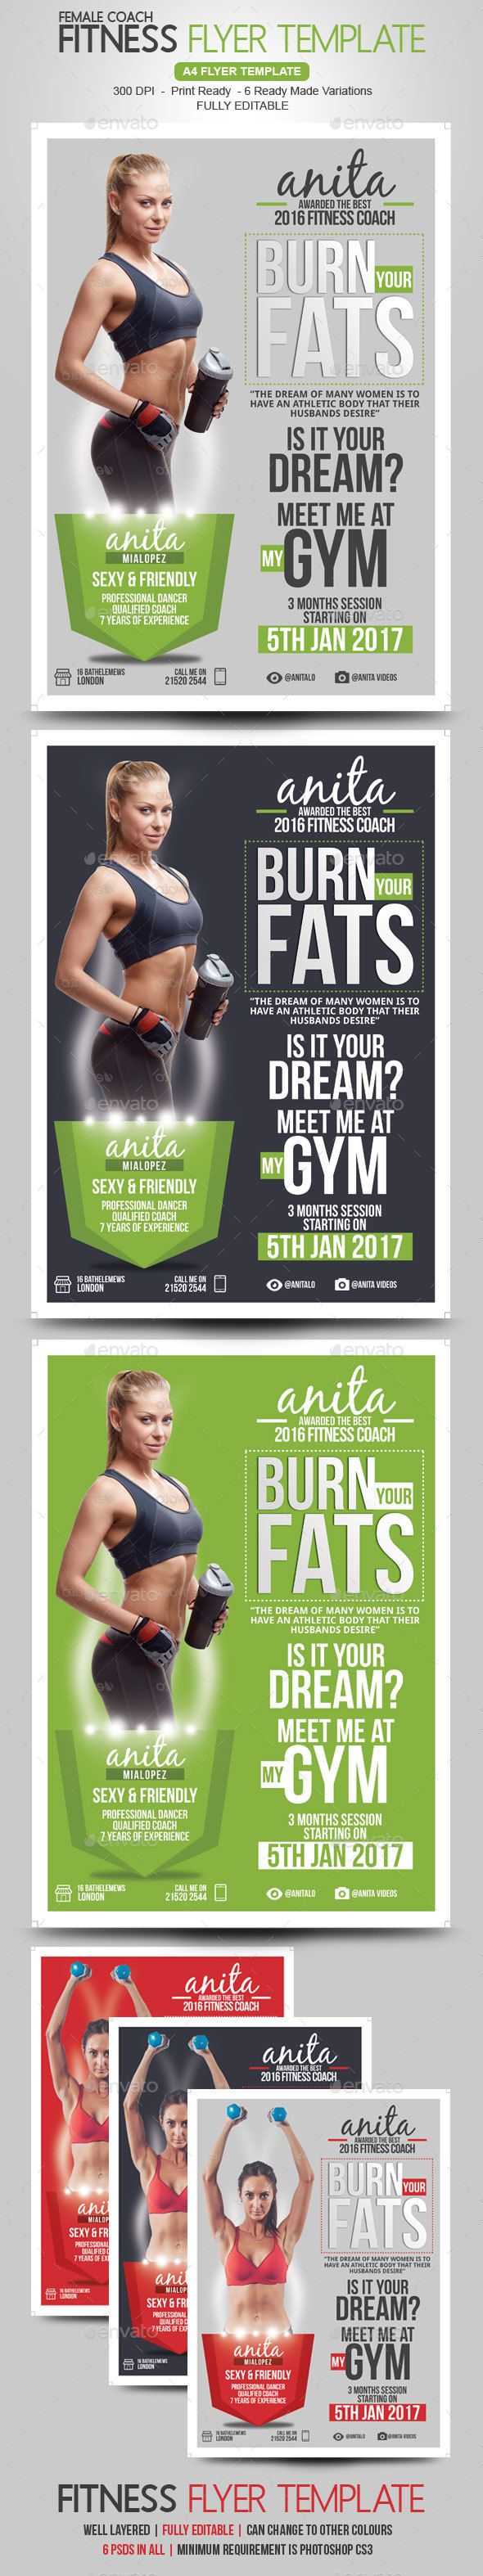 Poster design for coaching institute - Fitness Coach Flyer Design Template Corporate Flyers Design Template Psd Download Here Https